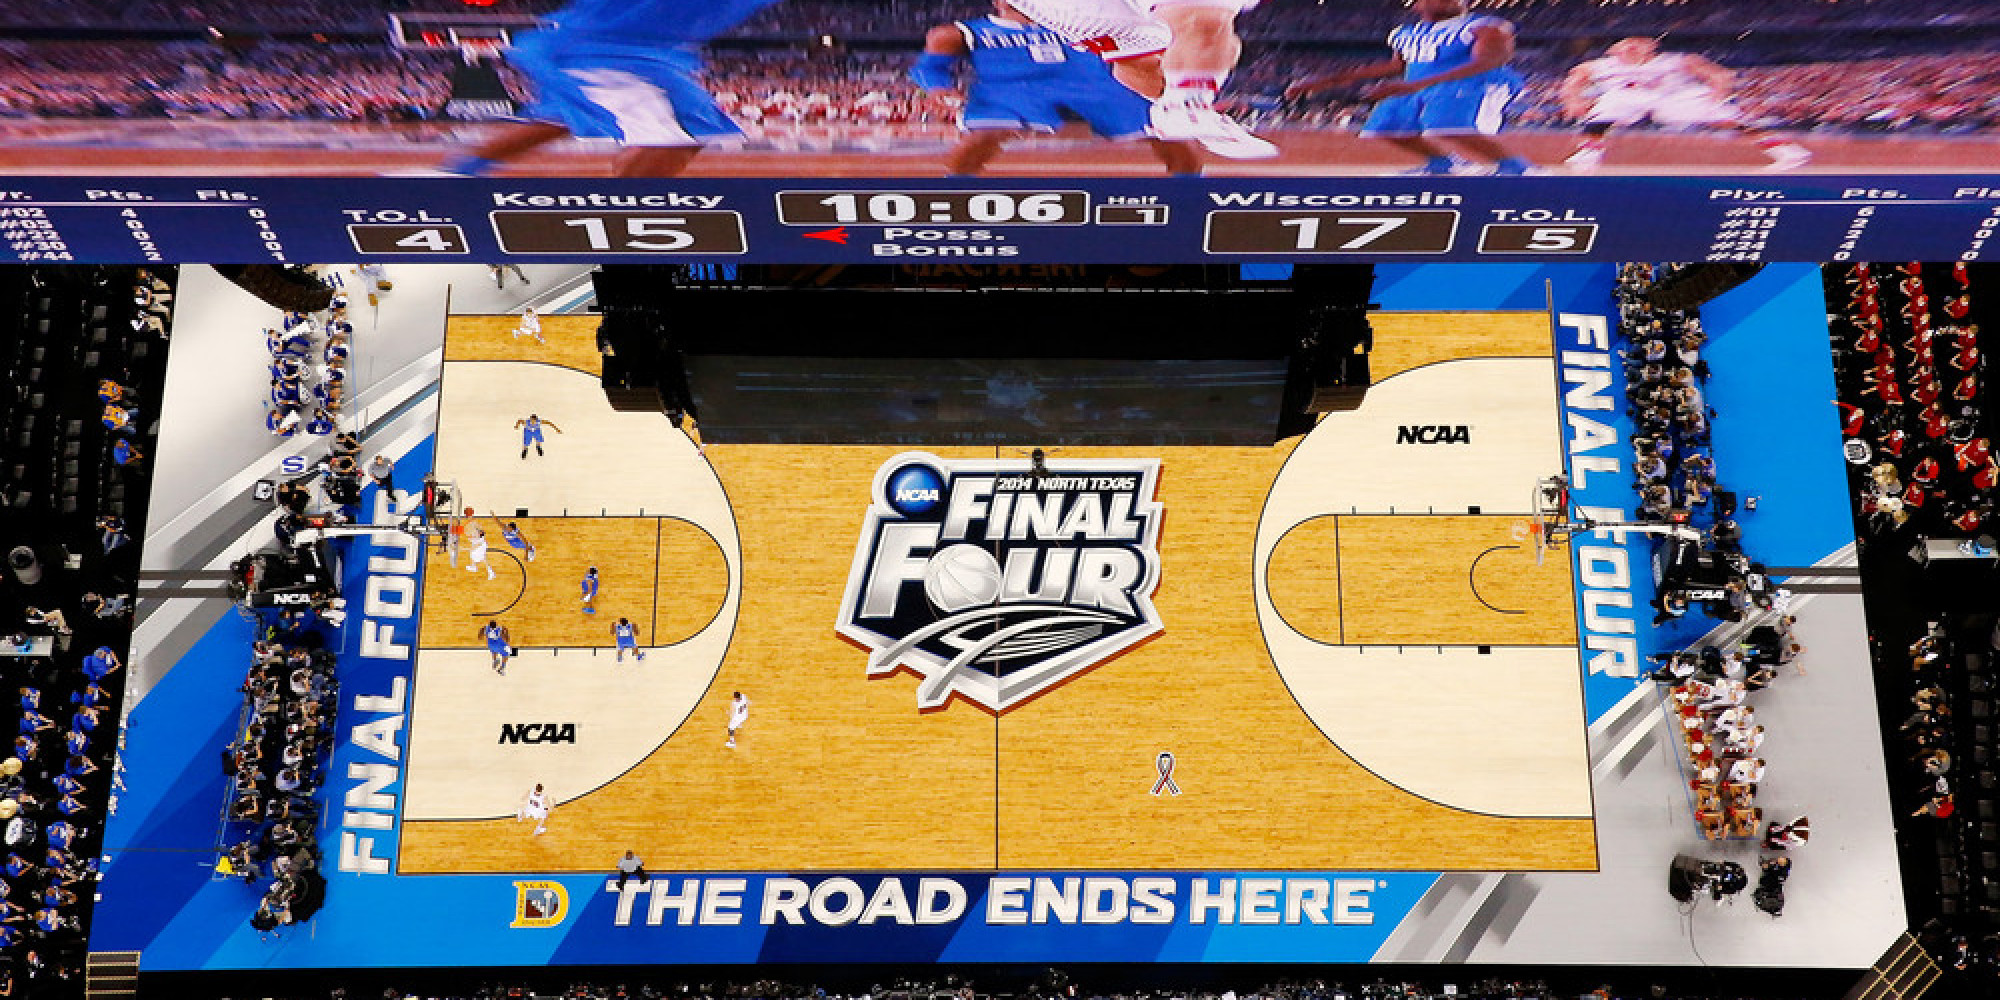 The Texas Sized Video Screens At The Final Four Are Bigger